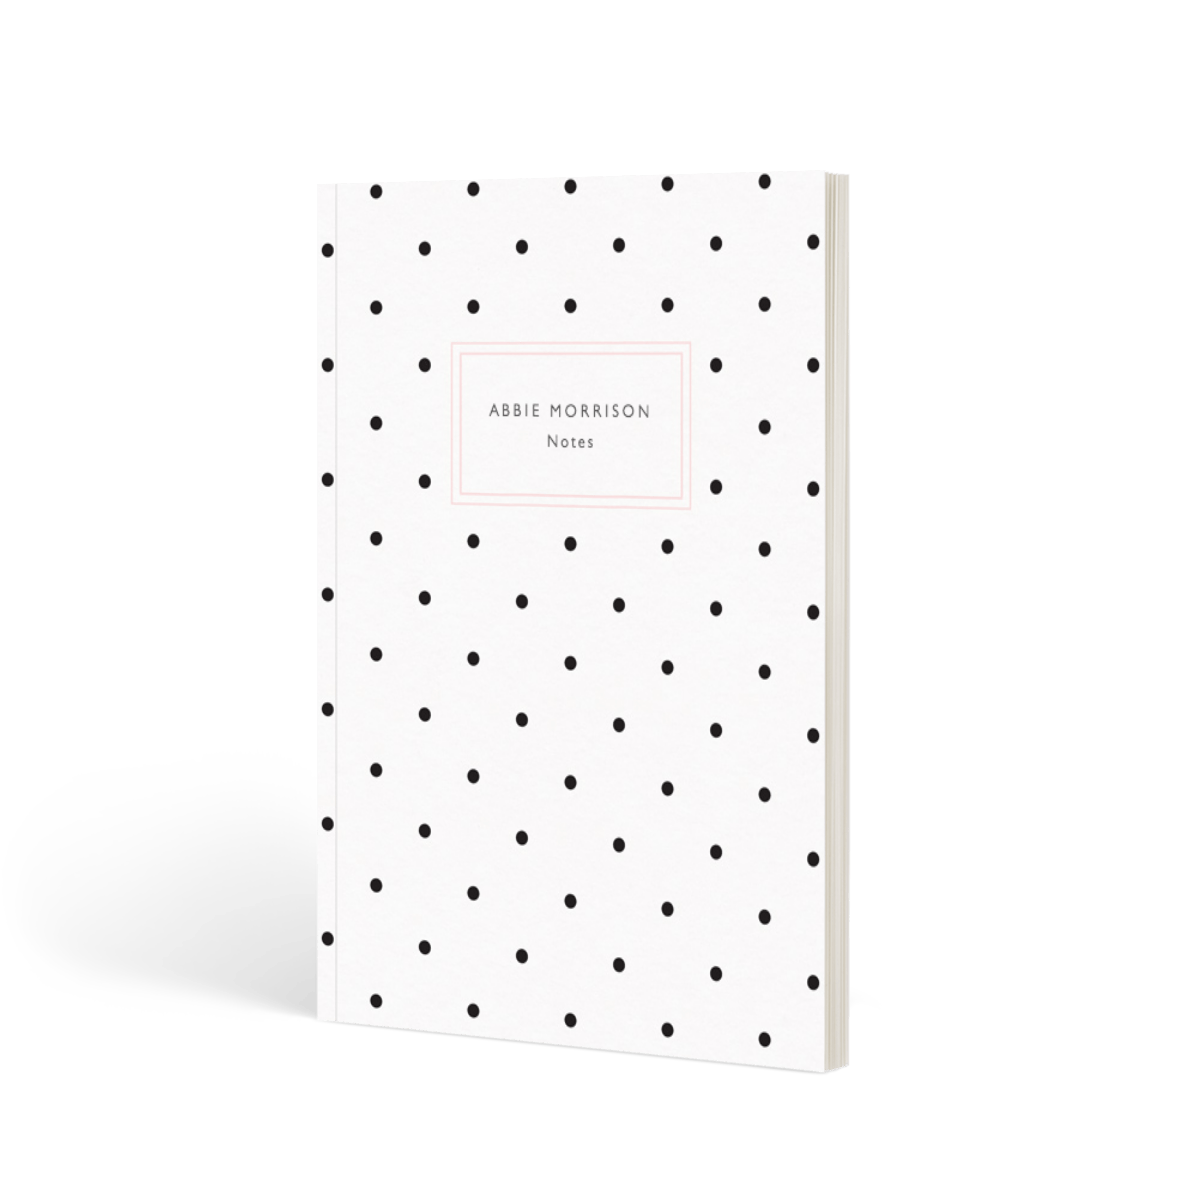 Https%3a%2f%2fwww.papier.com%2fproduct image%2f6690%2f6%2fpolka dots 1661 front 1585312102.png?ixlib=rb 1.1